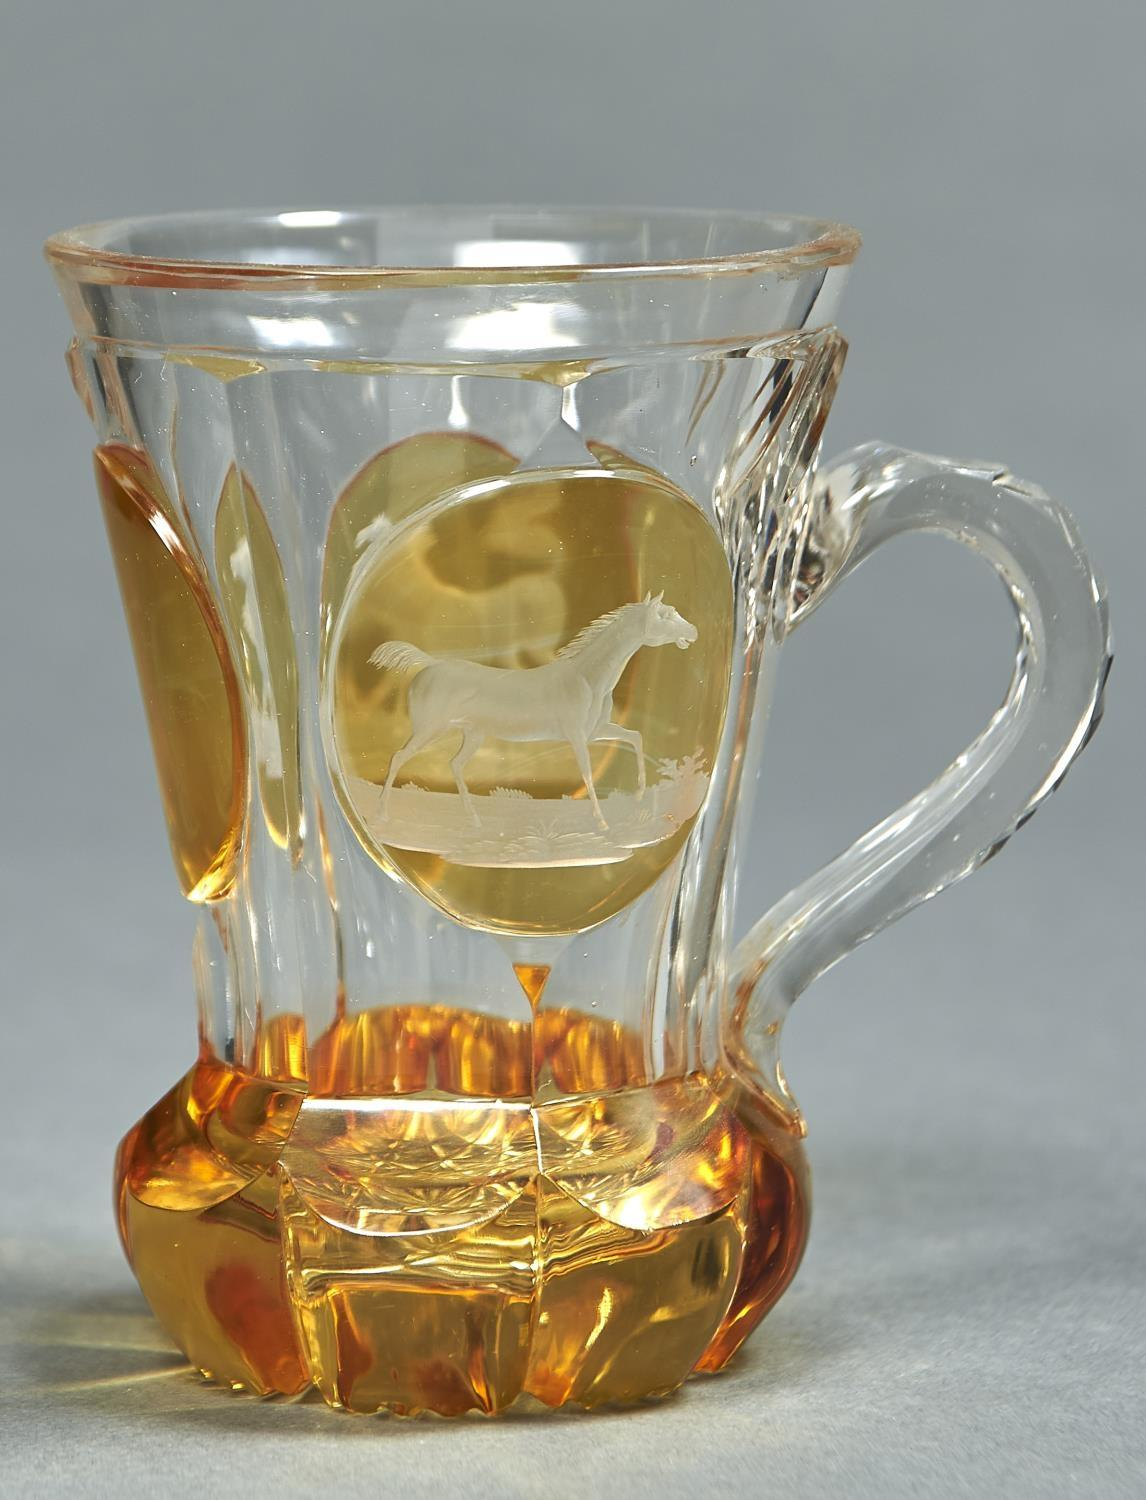 A BOHEMIAN AMBER FLASHED GLASS MUG, C1860, ENGRAVED TO EITHER SIDE WITH A HORSE, 13CM H Good